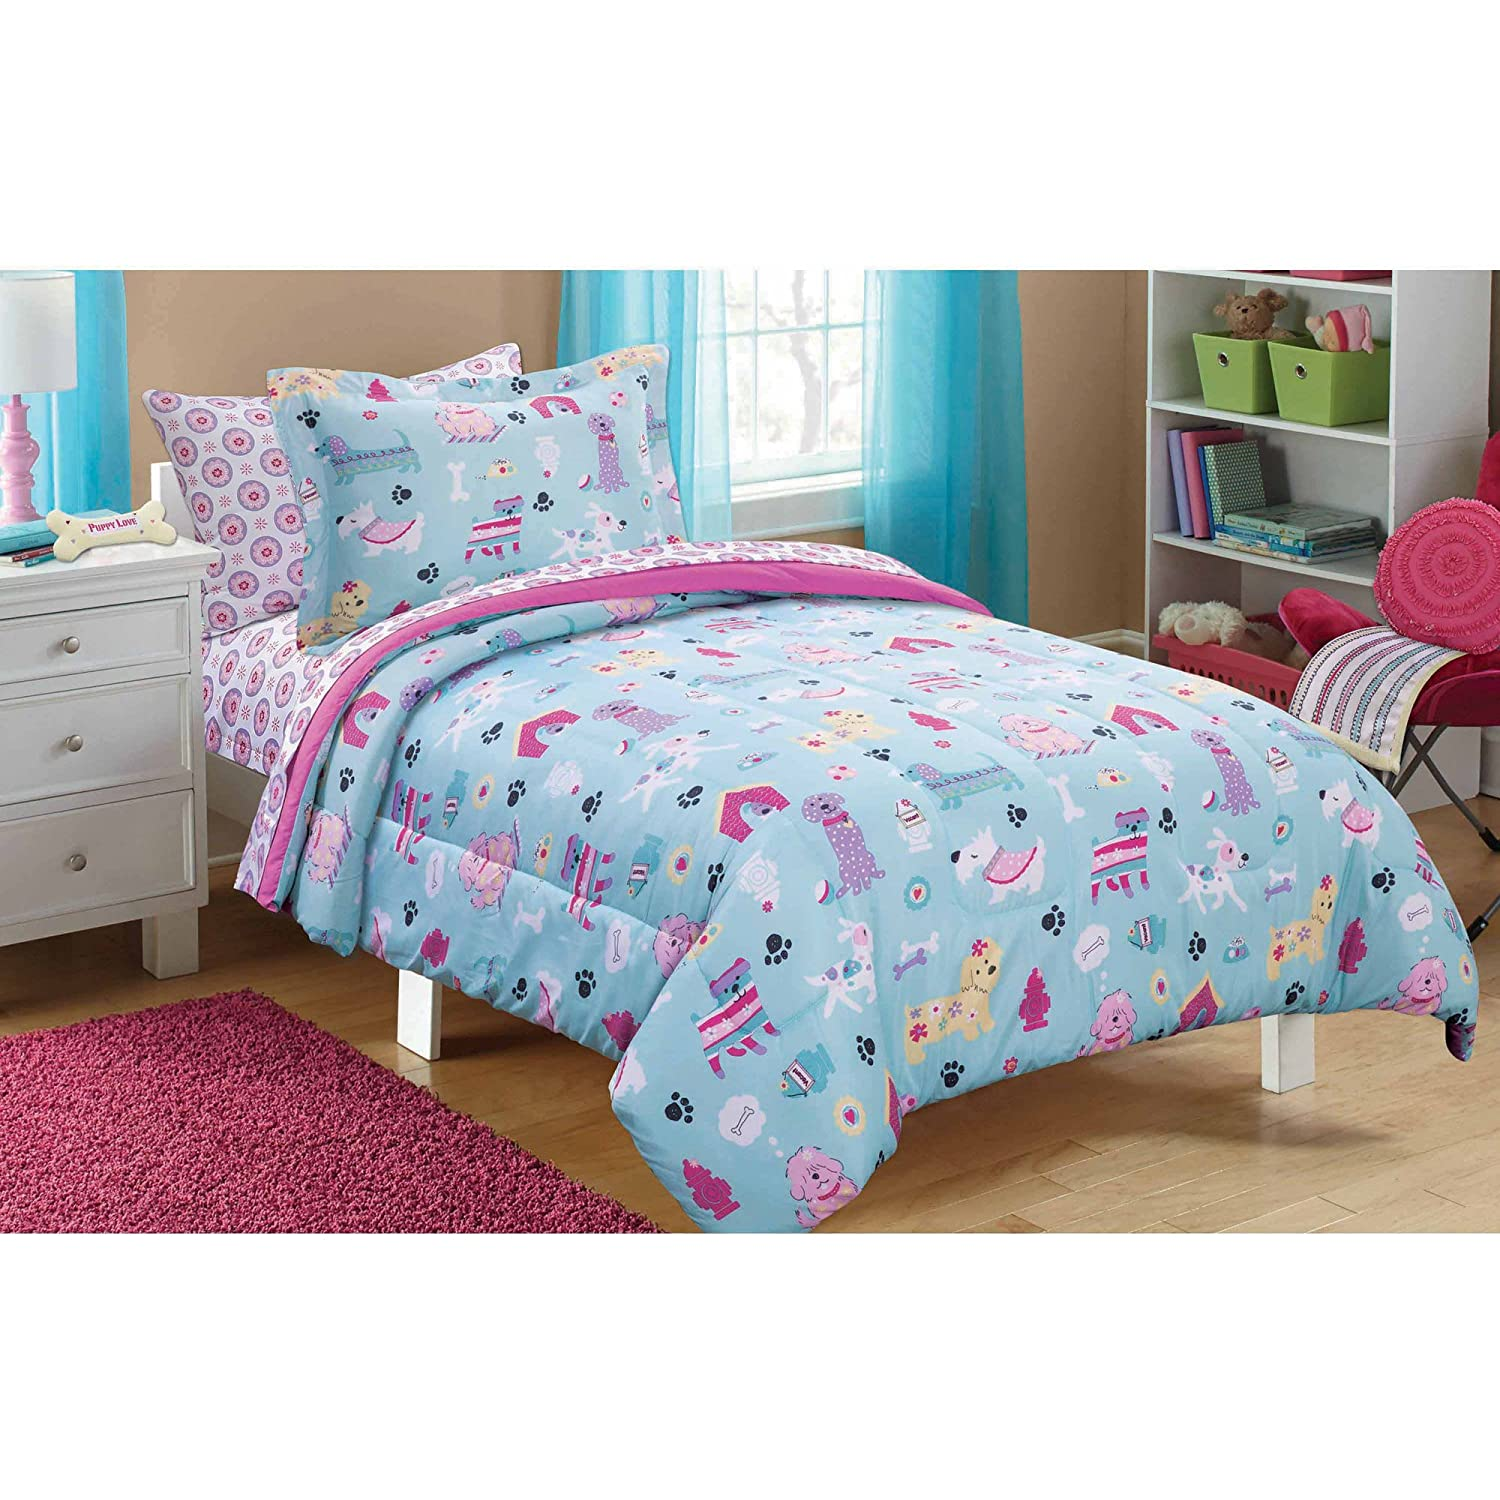 7 Piece Aqua Blue Pink Puppy Love Dogs Comforter Set